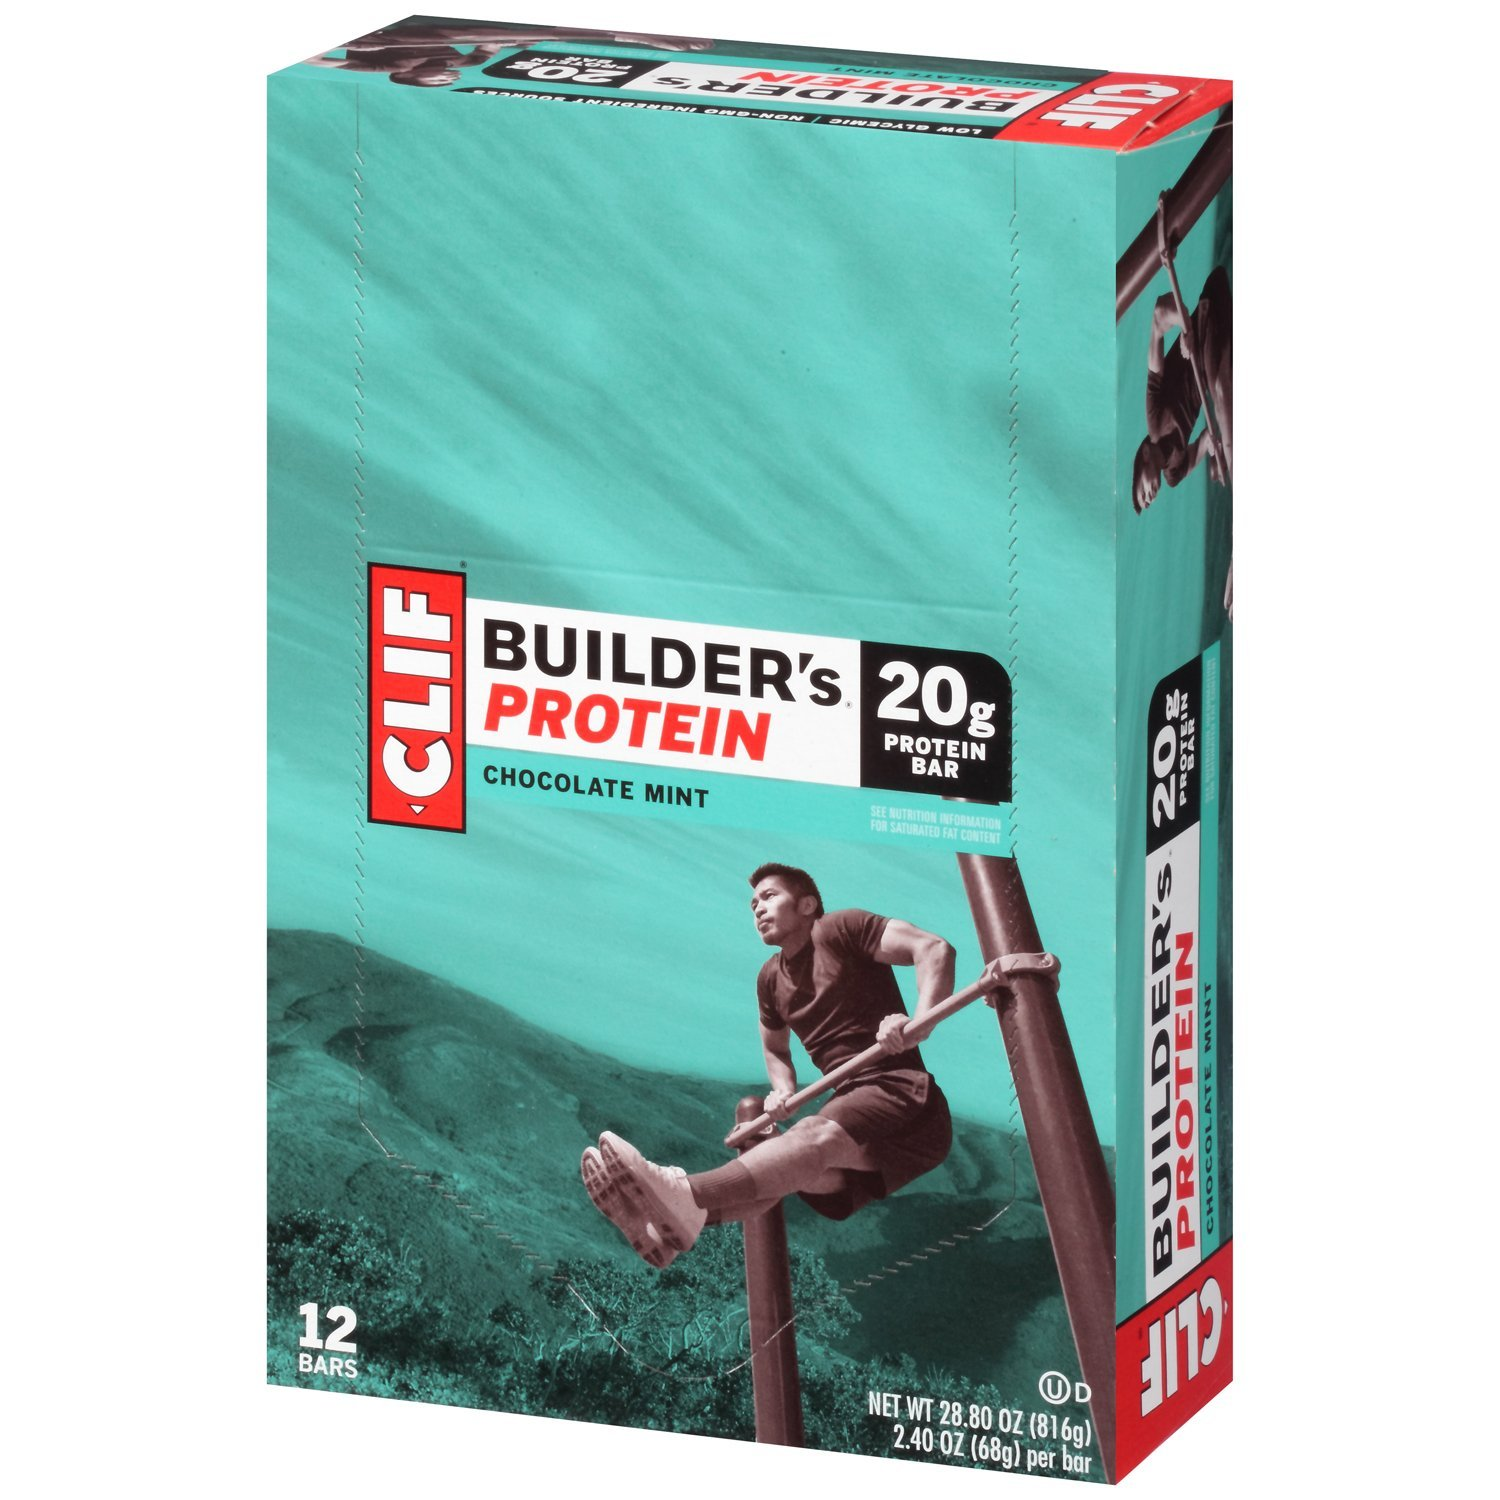 CLIF BUILDER'S - Protein Bar - Chocolate Mint - (2.4 Ounce Non-GMO Bar, 12 Count)